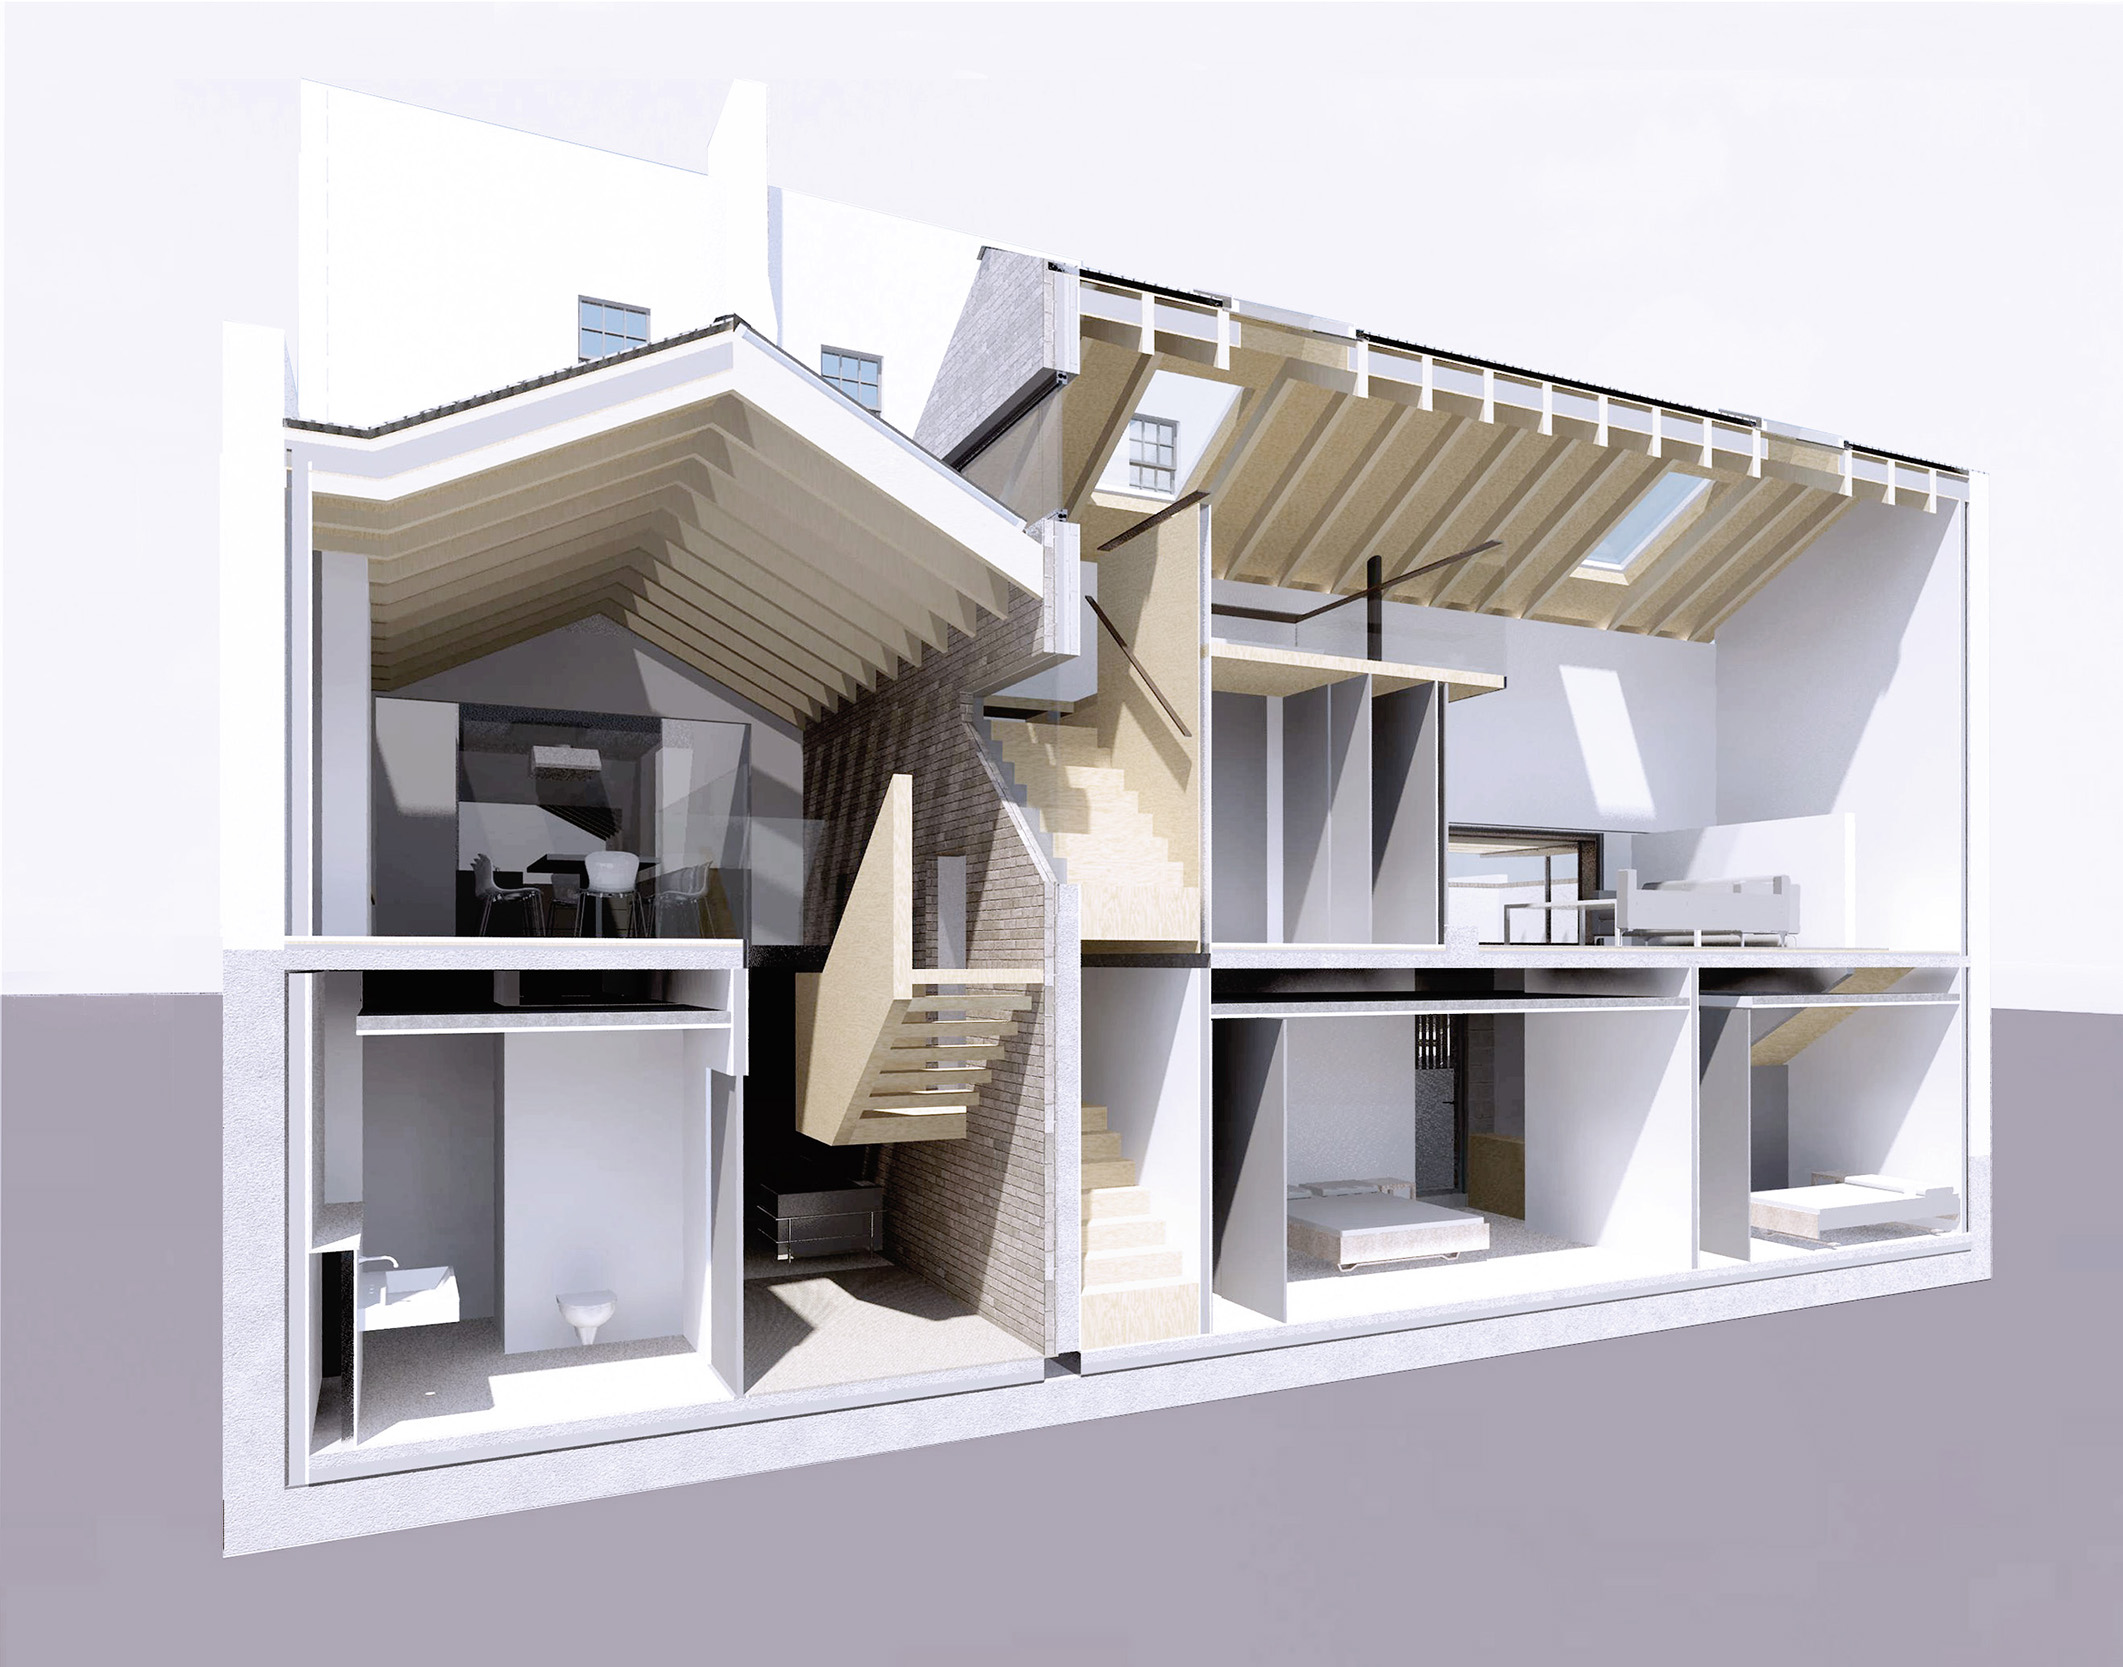 Hidden House Chelsea Knightsbridge LTS Architects sectional perspective